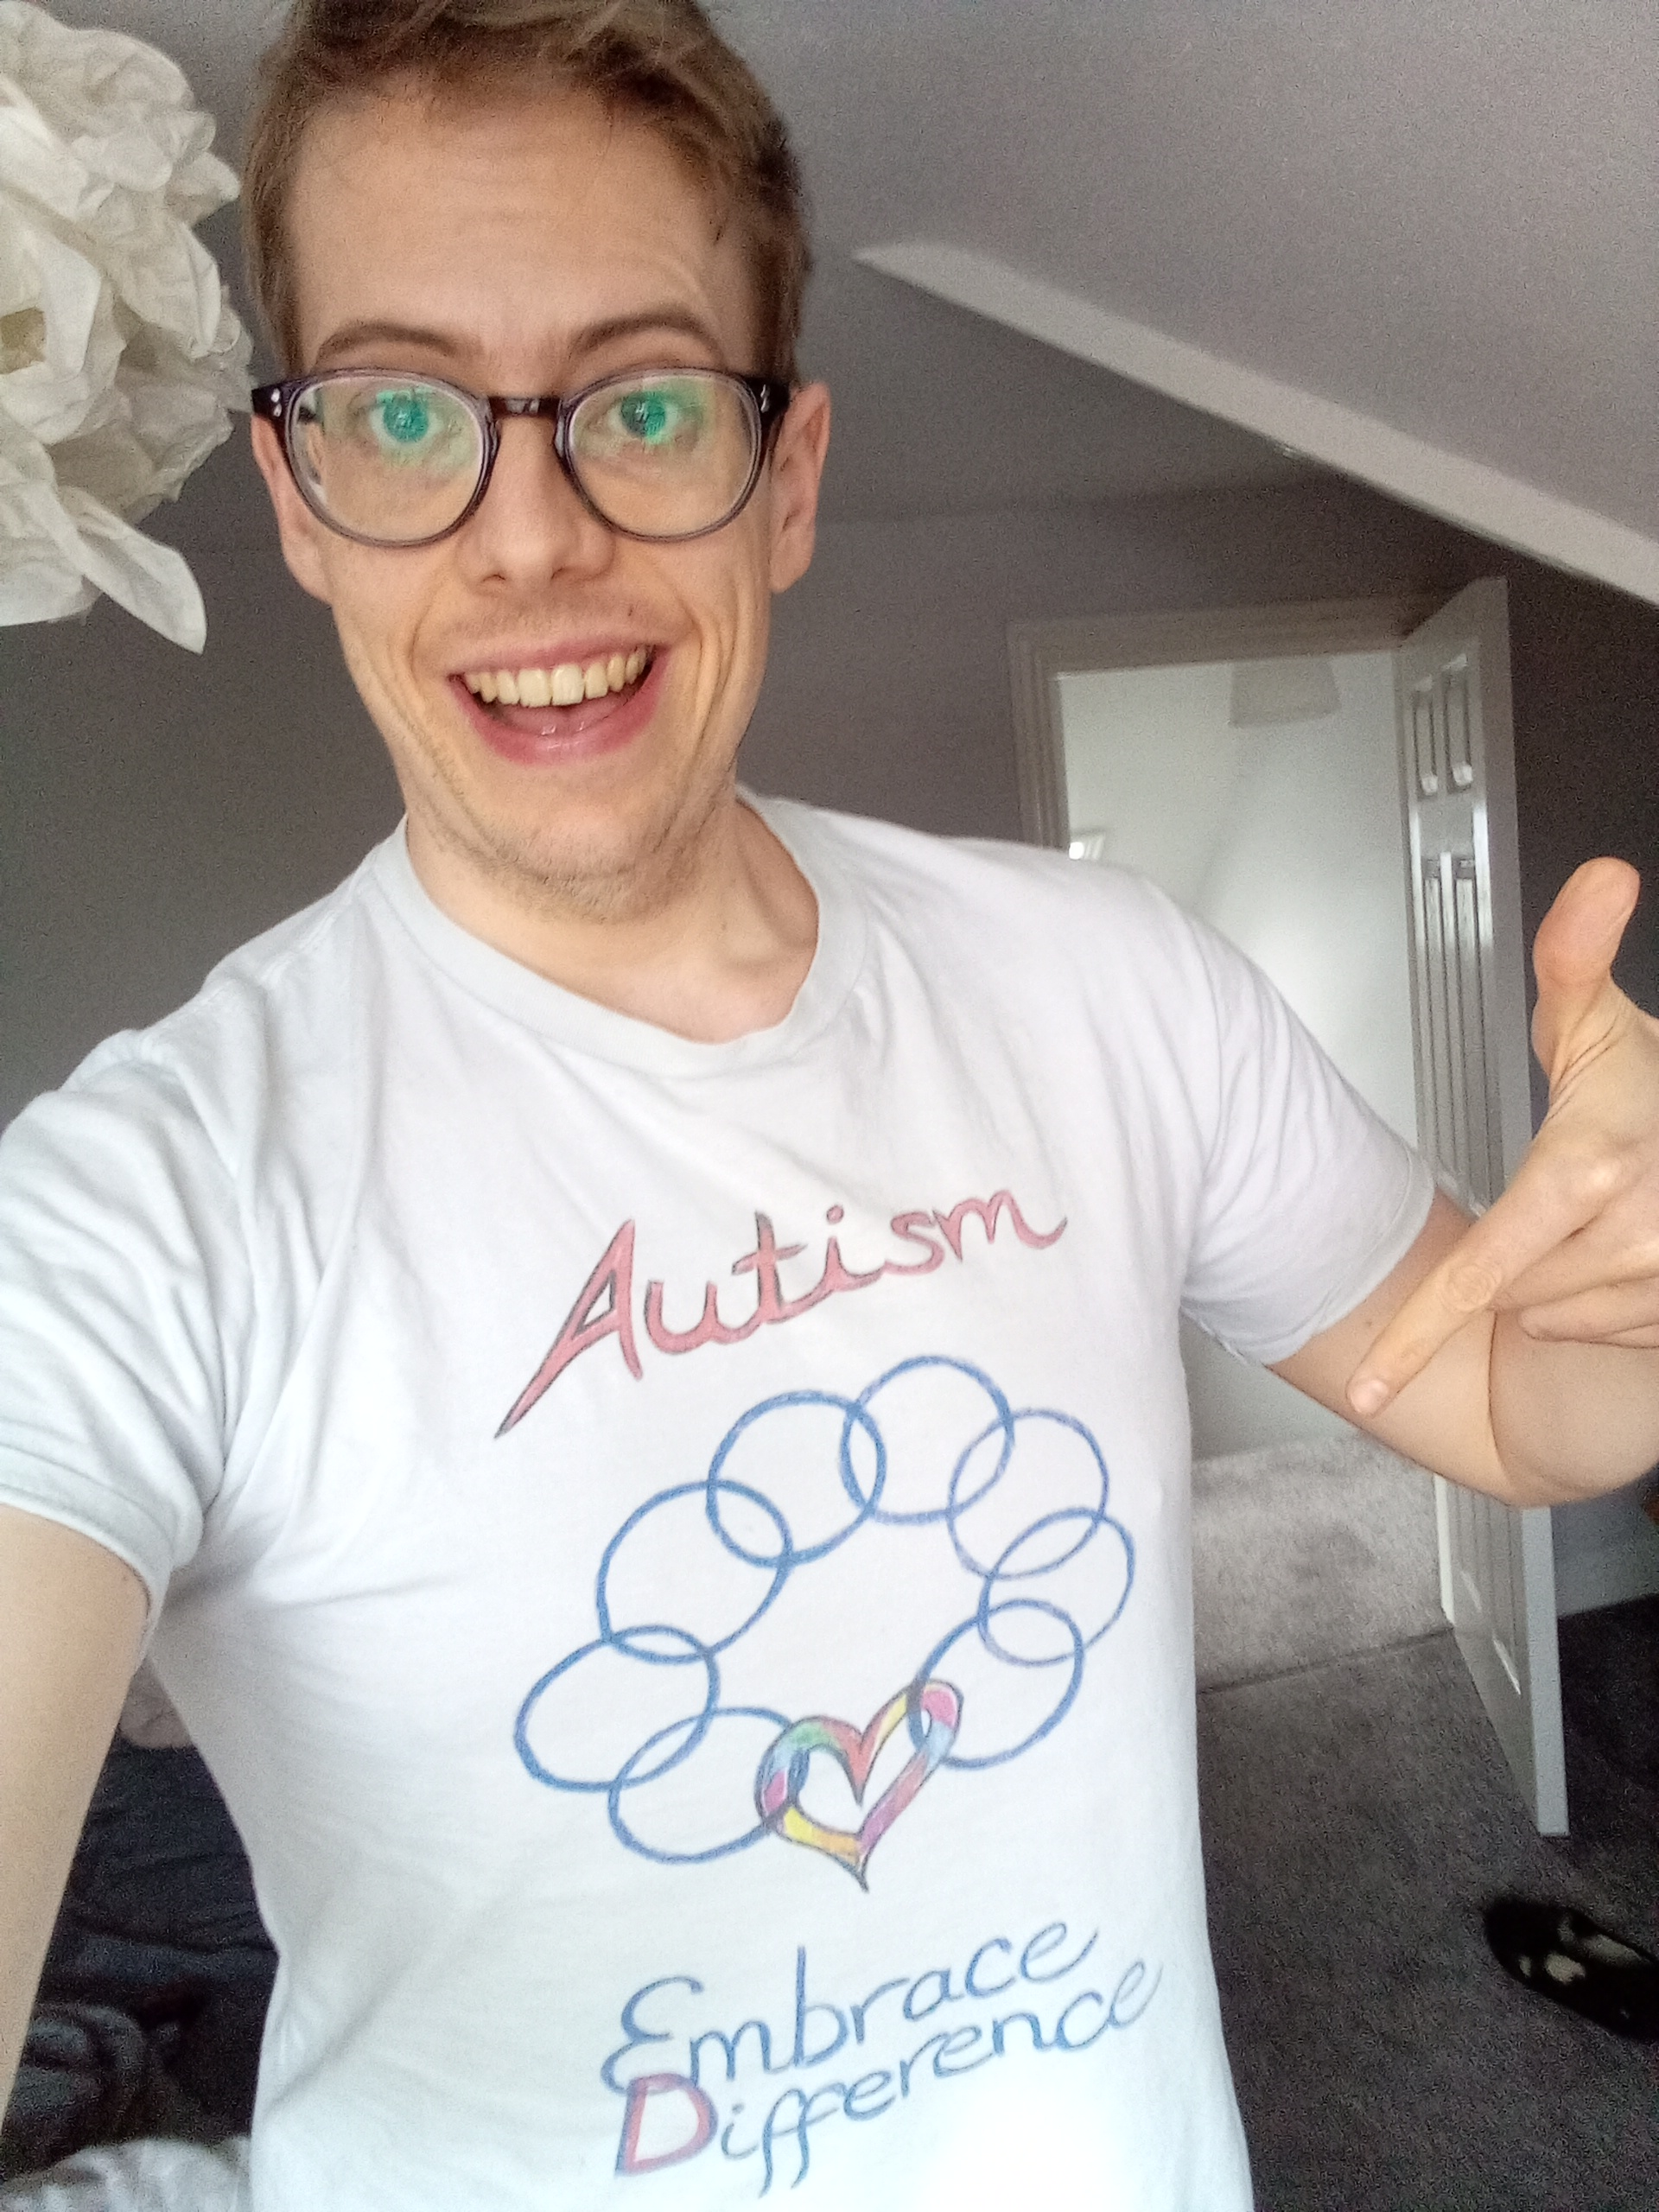 """A 33 year old white autistic with light blonde hair is pointing at his white t-shirt, which says """"Autism"""" and Embrace Diversity"""". Between the two words is an image of a series of interlocking circles, culminating in a heart with rainbow colours."""